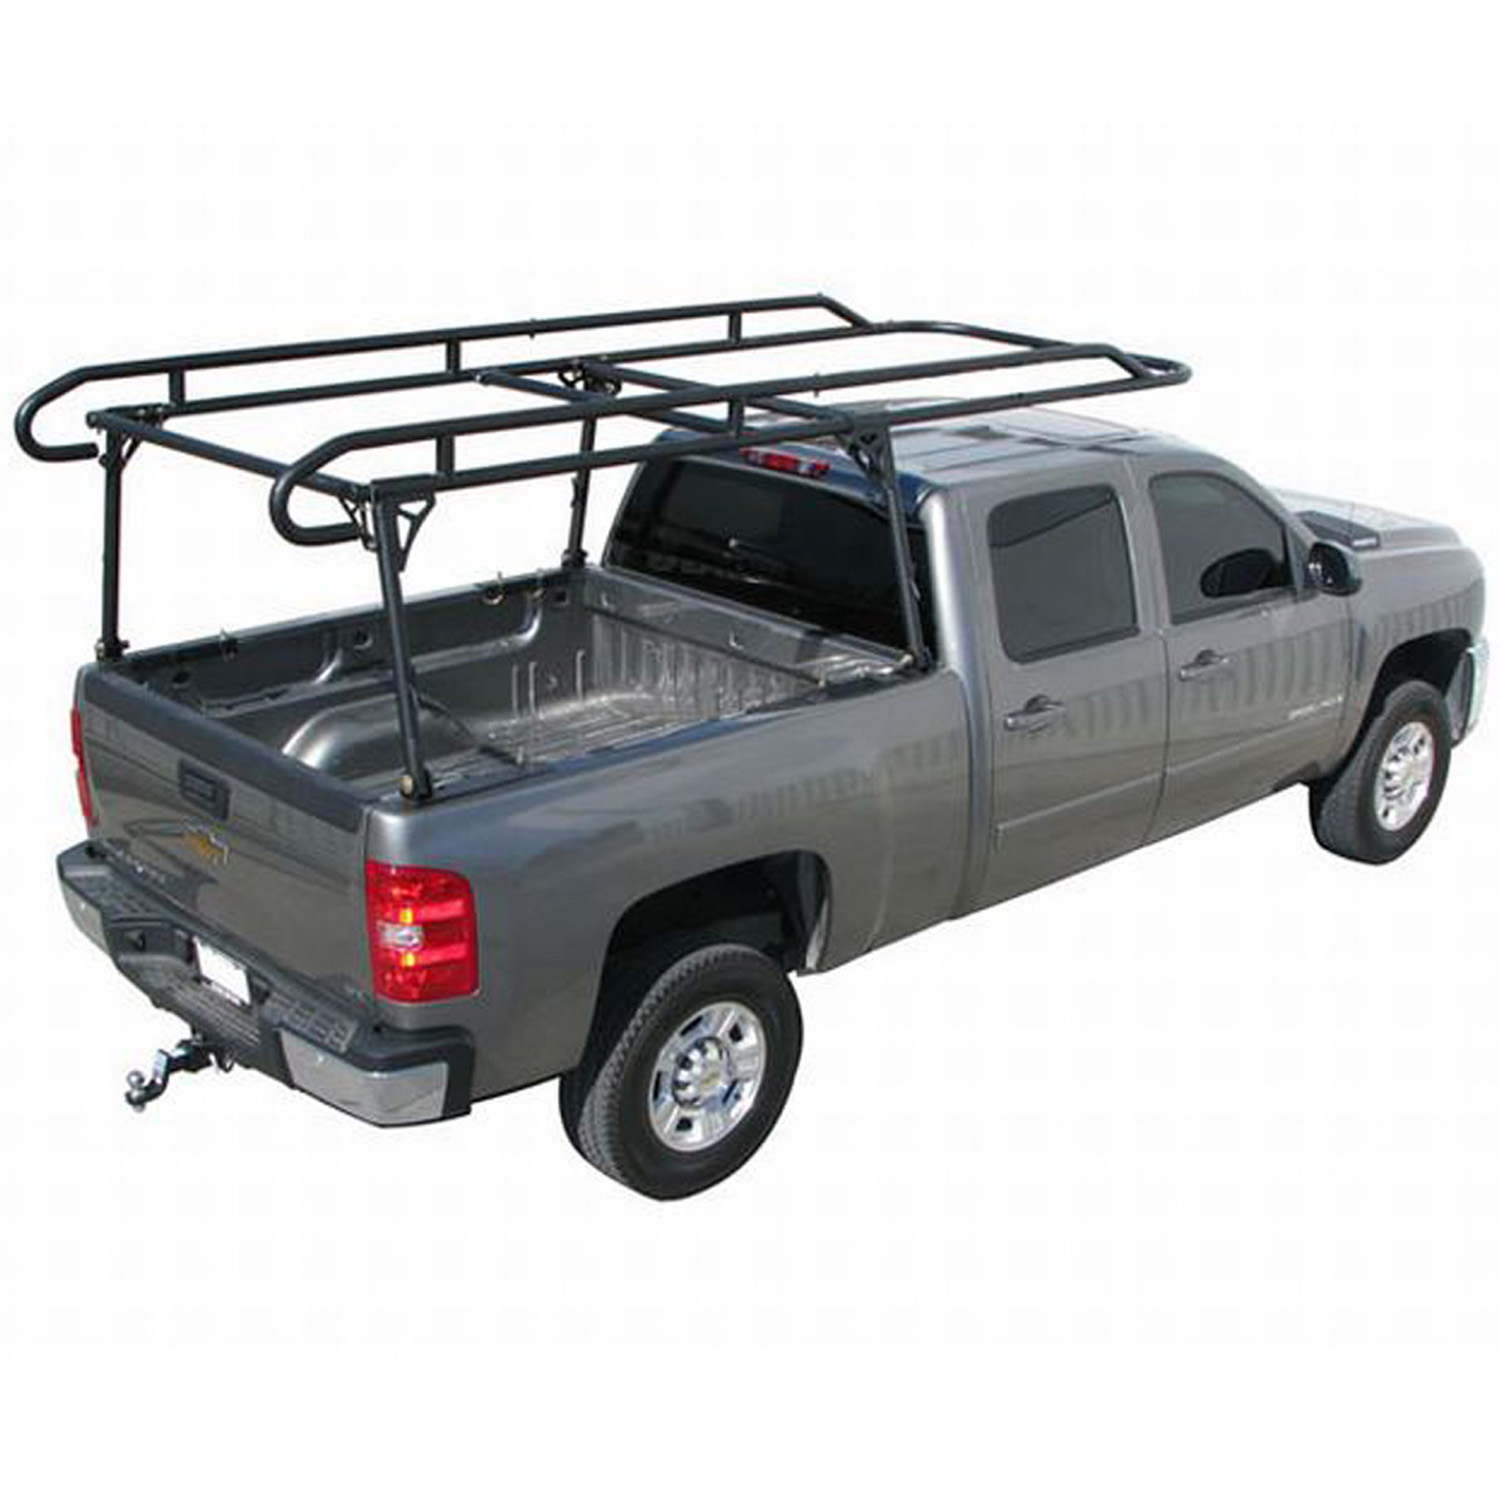 18602 Paramount Workforce Ladder Rack 1500 Pound Capacity